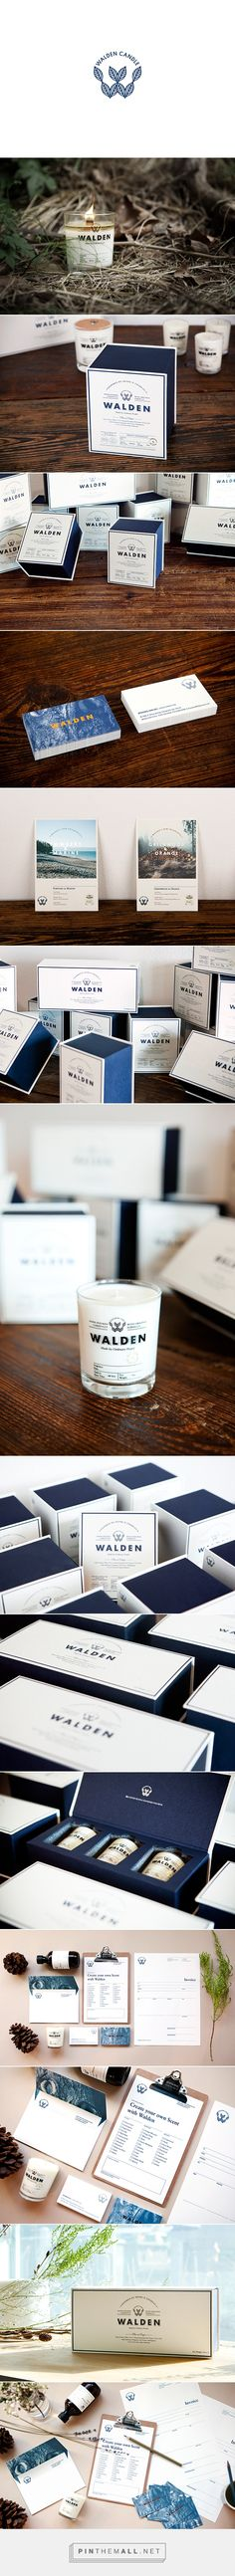 WALDEN on Behance... - a grouped images picture